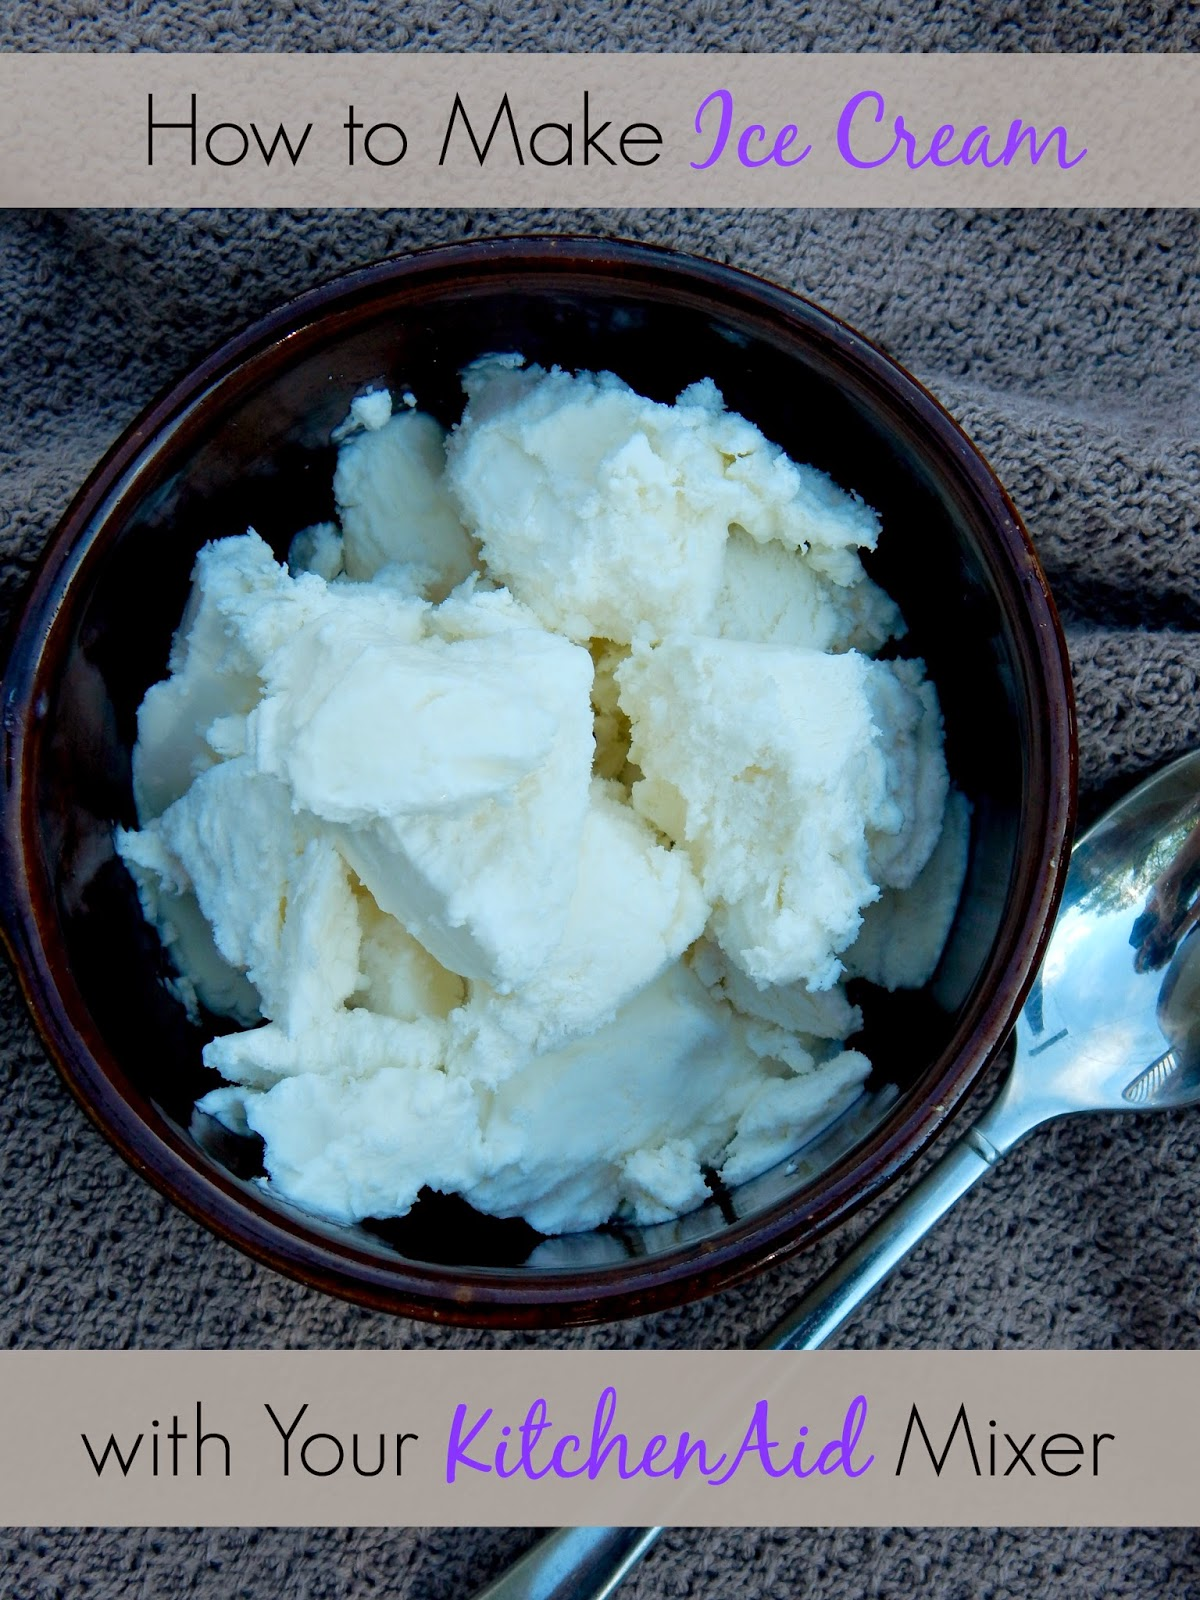 How To Make Ice Cream With Your KitchenAid Mixer